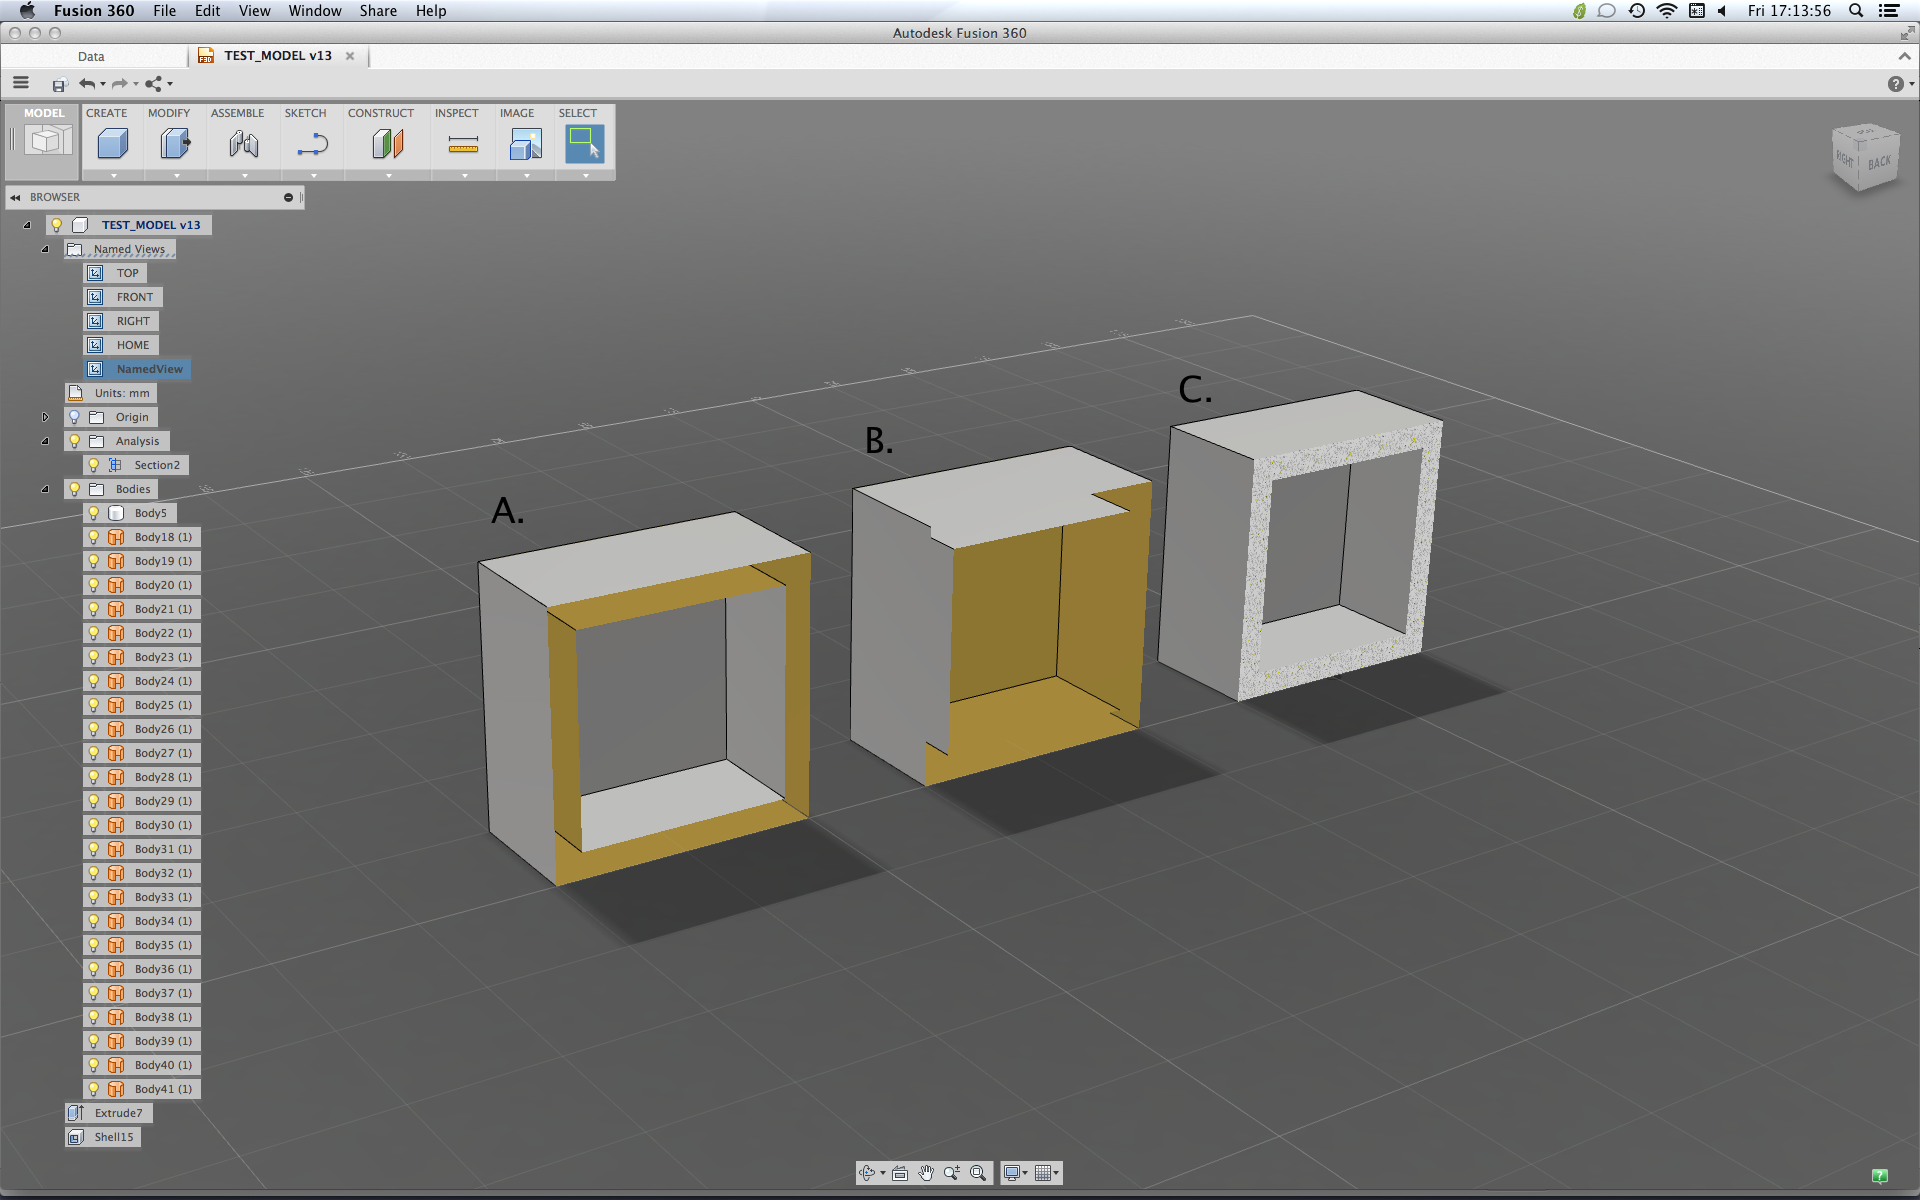 how to move design into another fusion 360